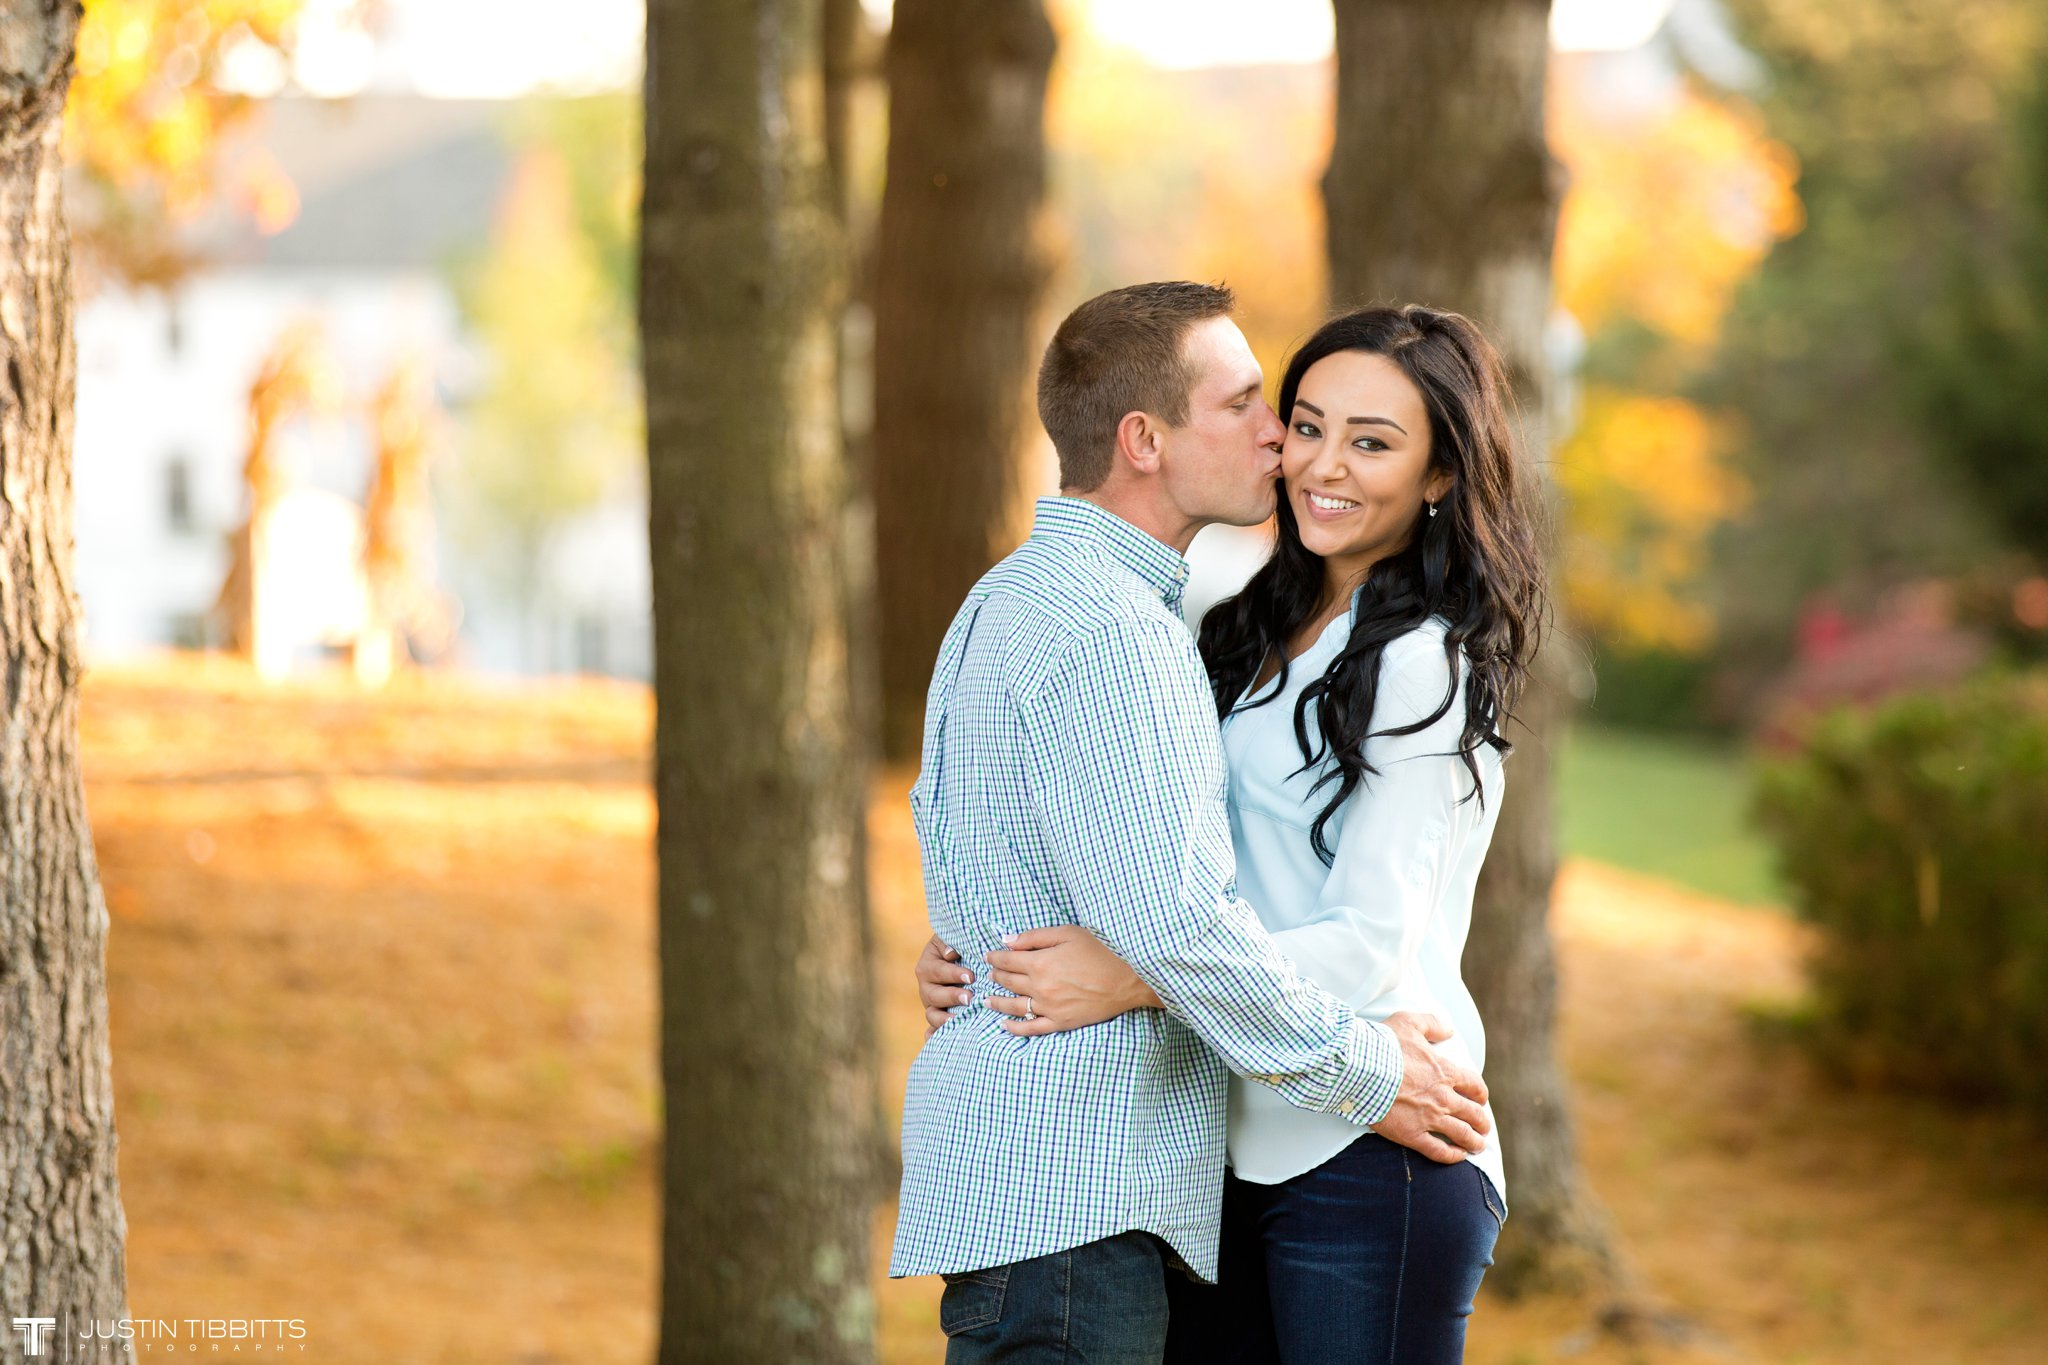 sagamore-engagement-photos-by-justin-tibbitts-photography-with-laina-and-mike_0019